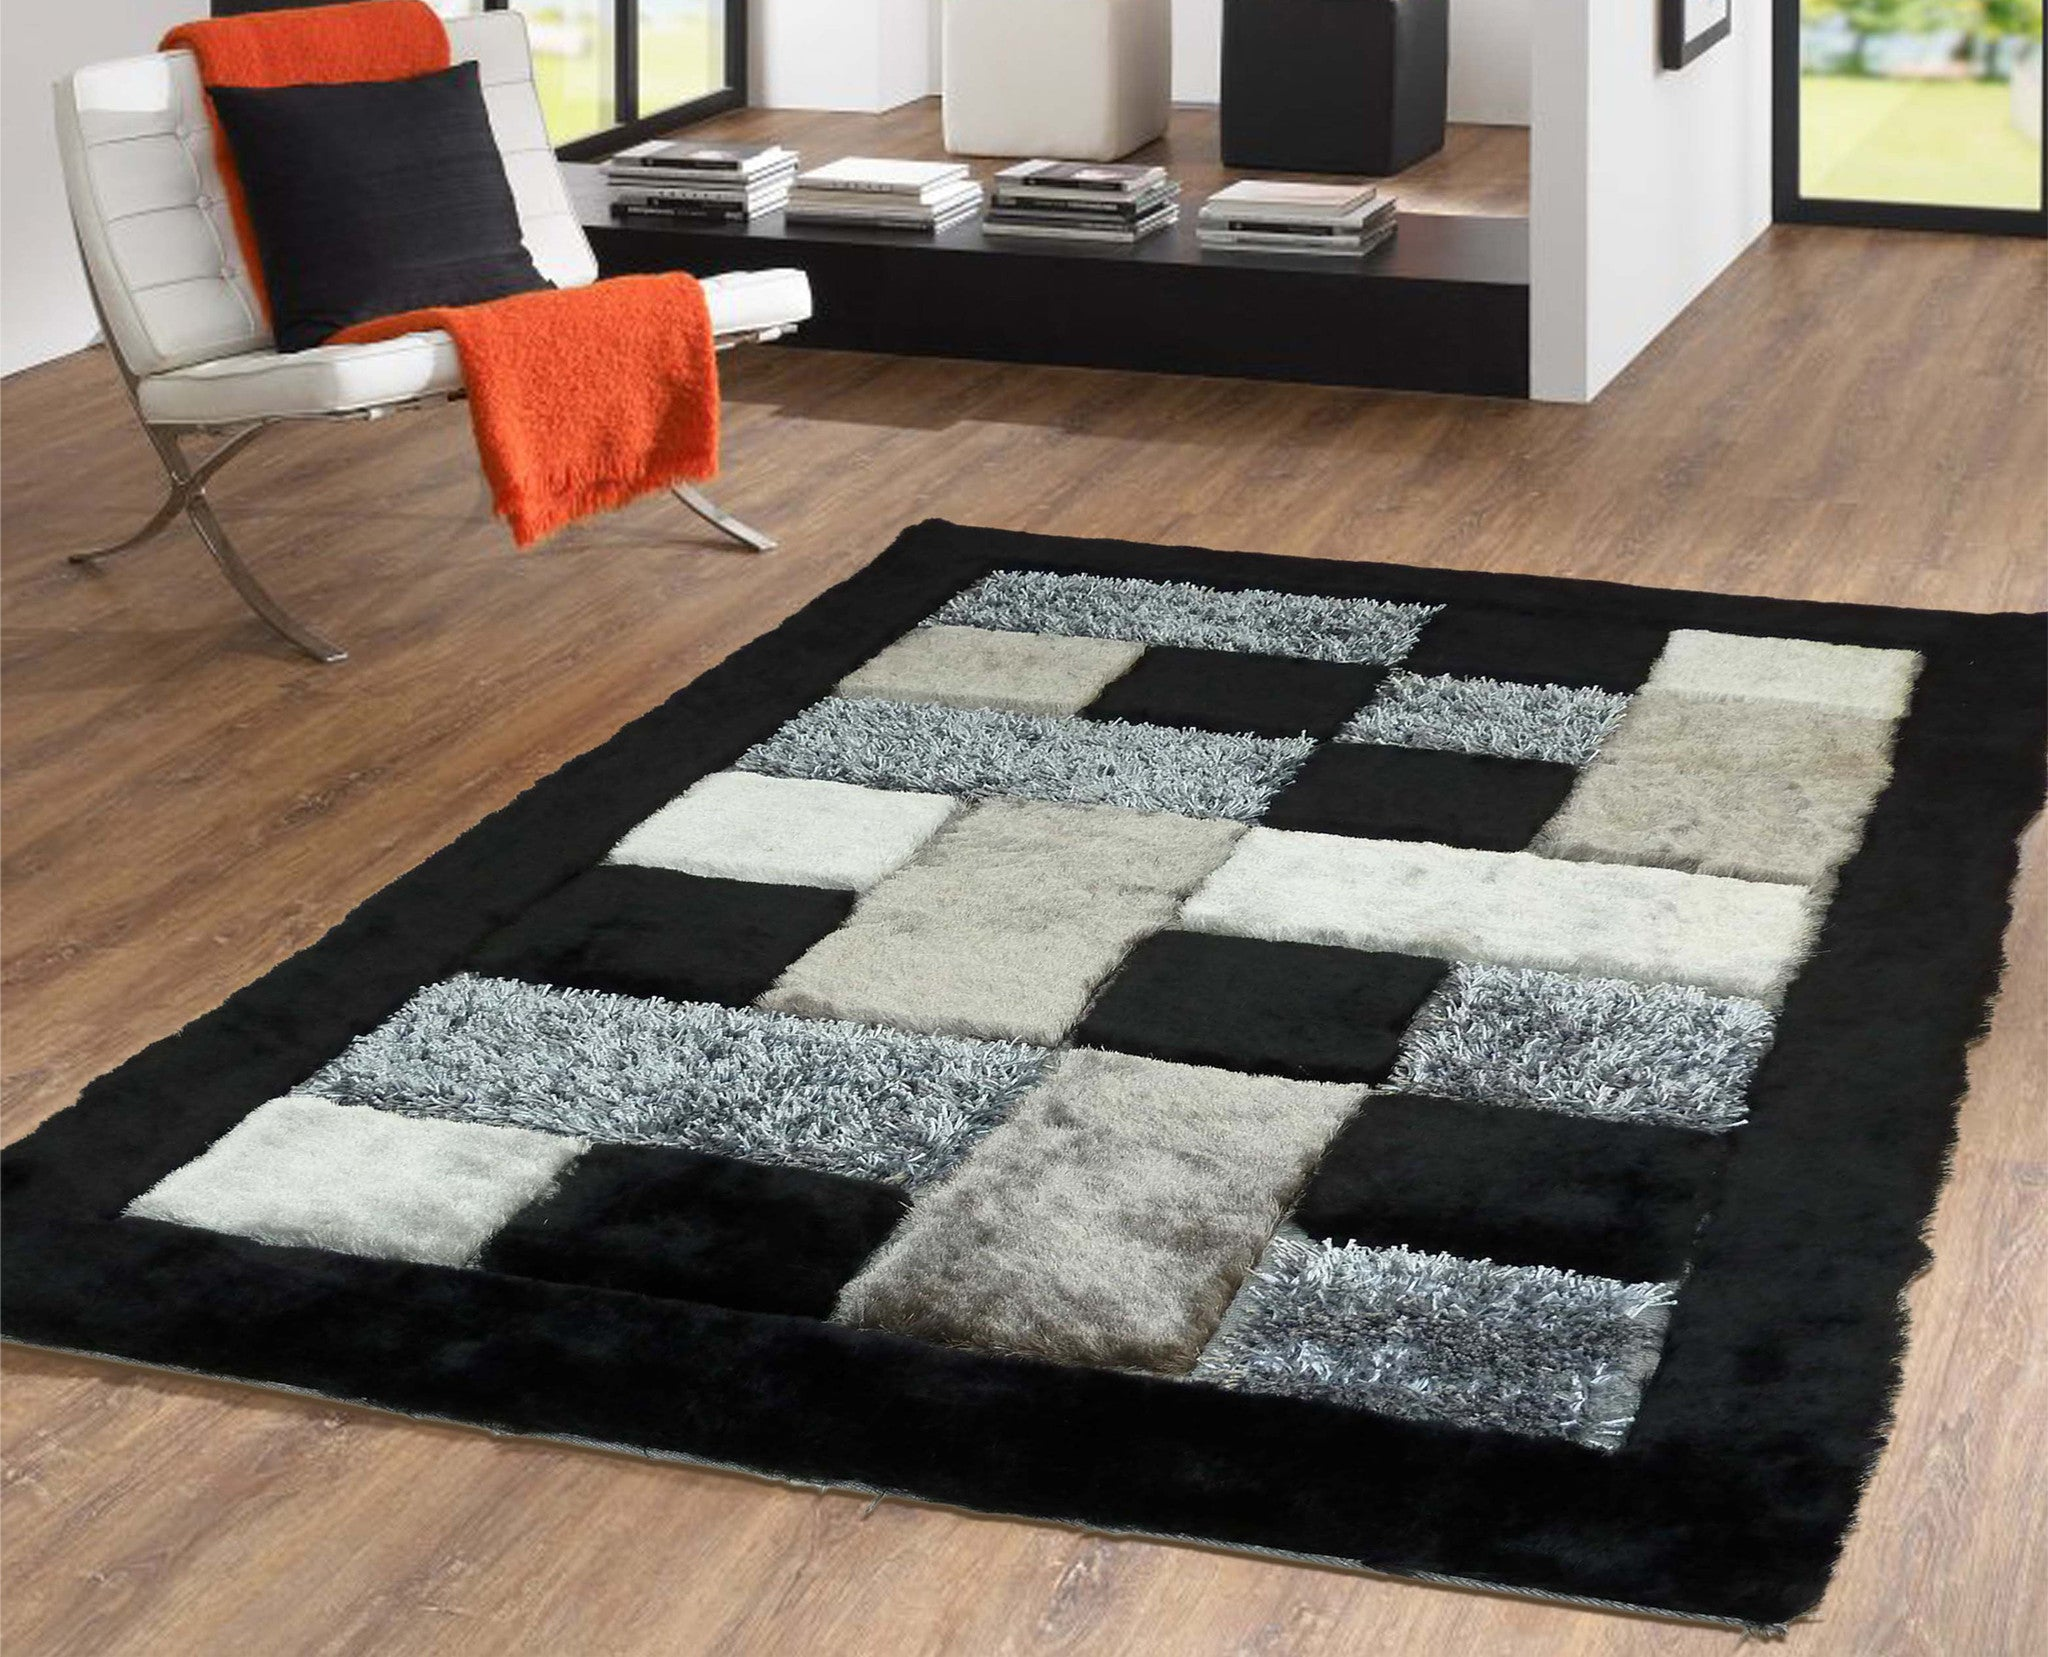 luxurious shag rug in grey and black with unique checker geometric design 4u0027 x 5